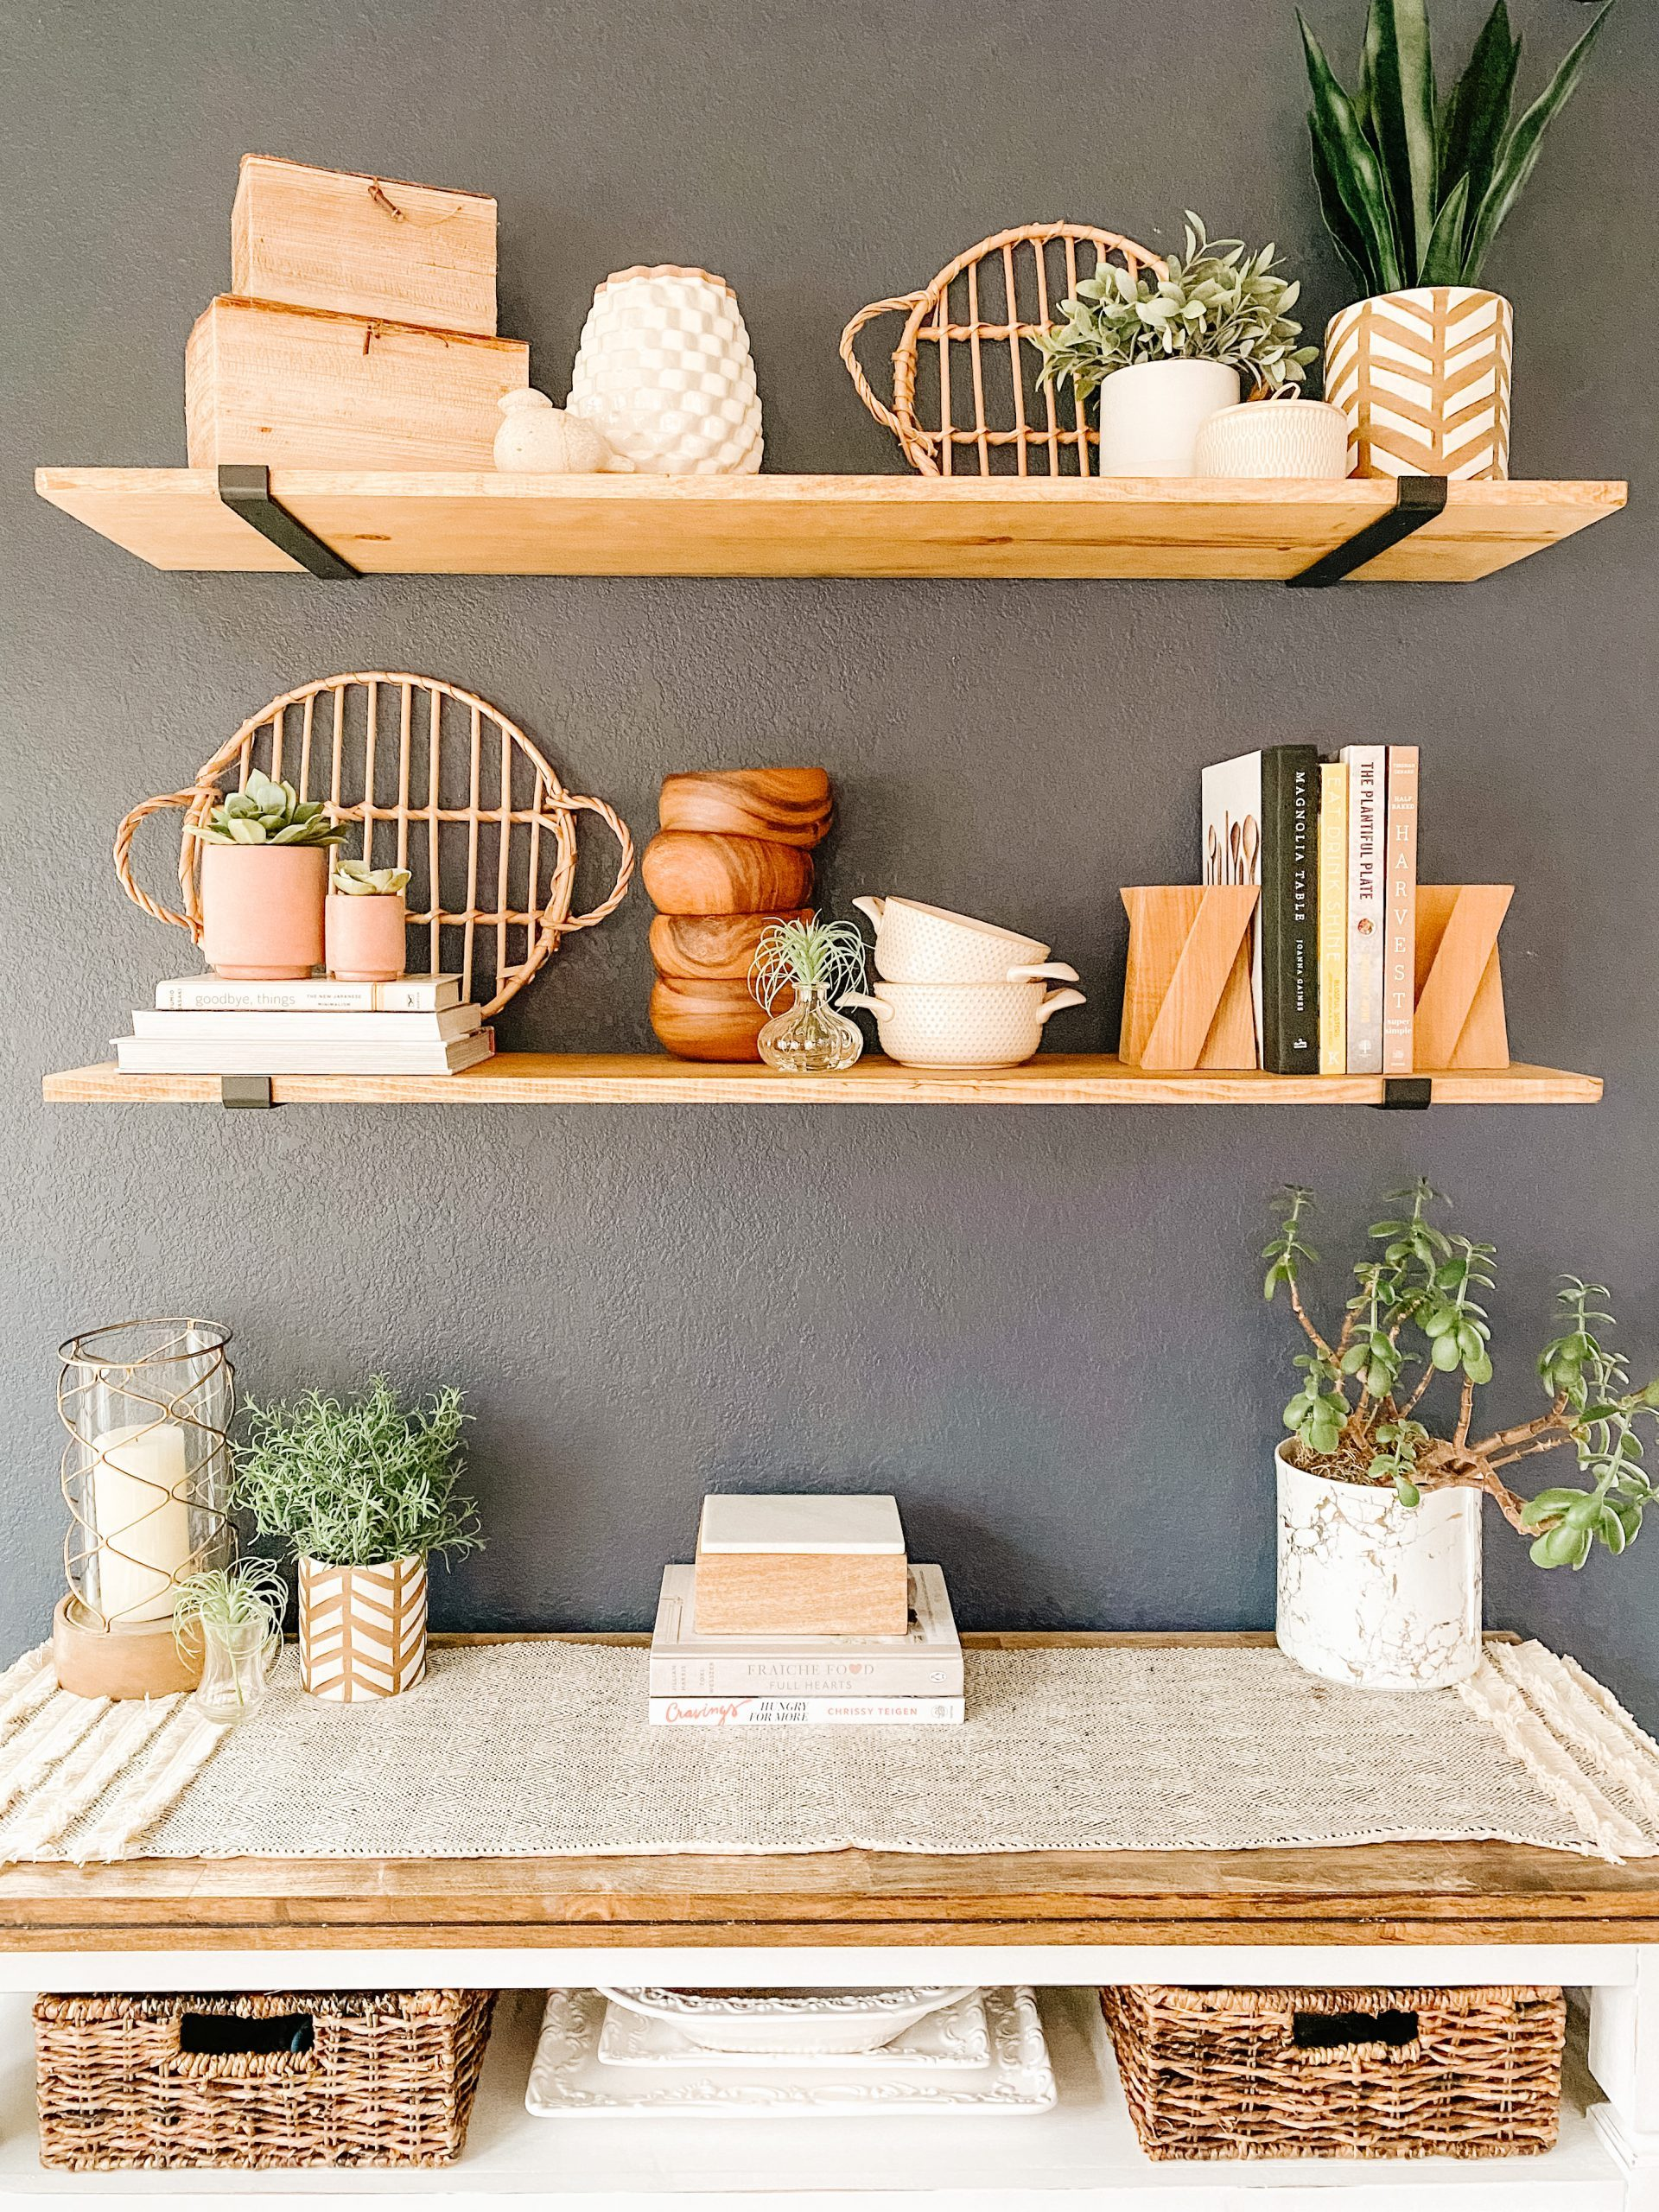 DIY wood wall shelves with black brackets on navy blue wall